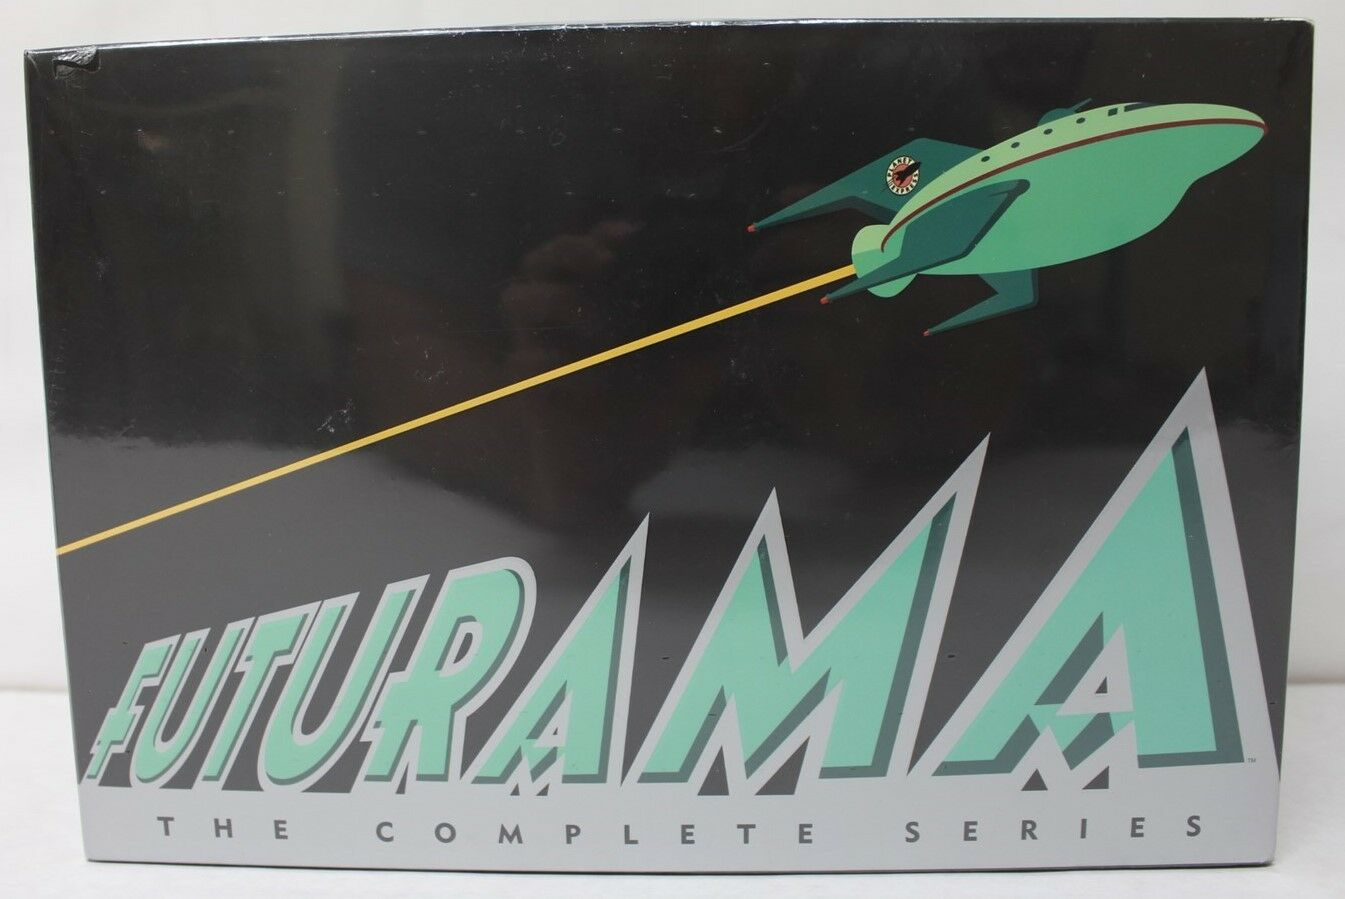 Futurama The Complete Series 27 Disc Set DVD NEW & SEALED FREE SHIPPING